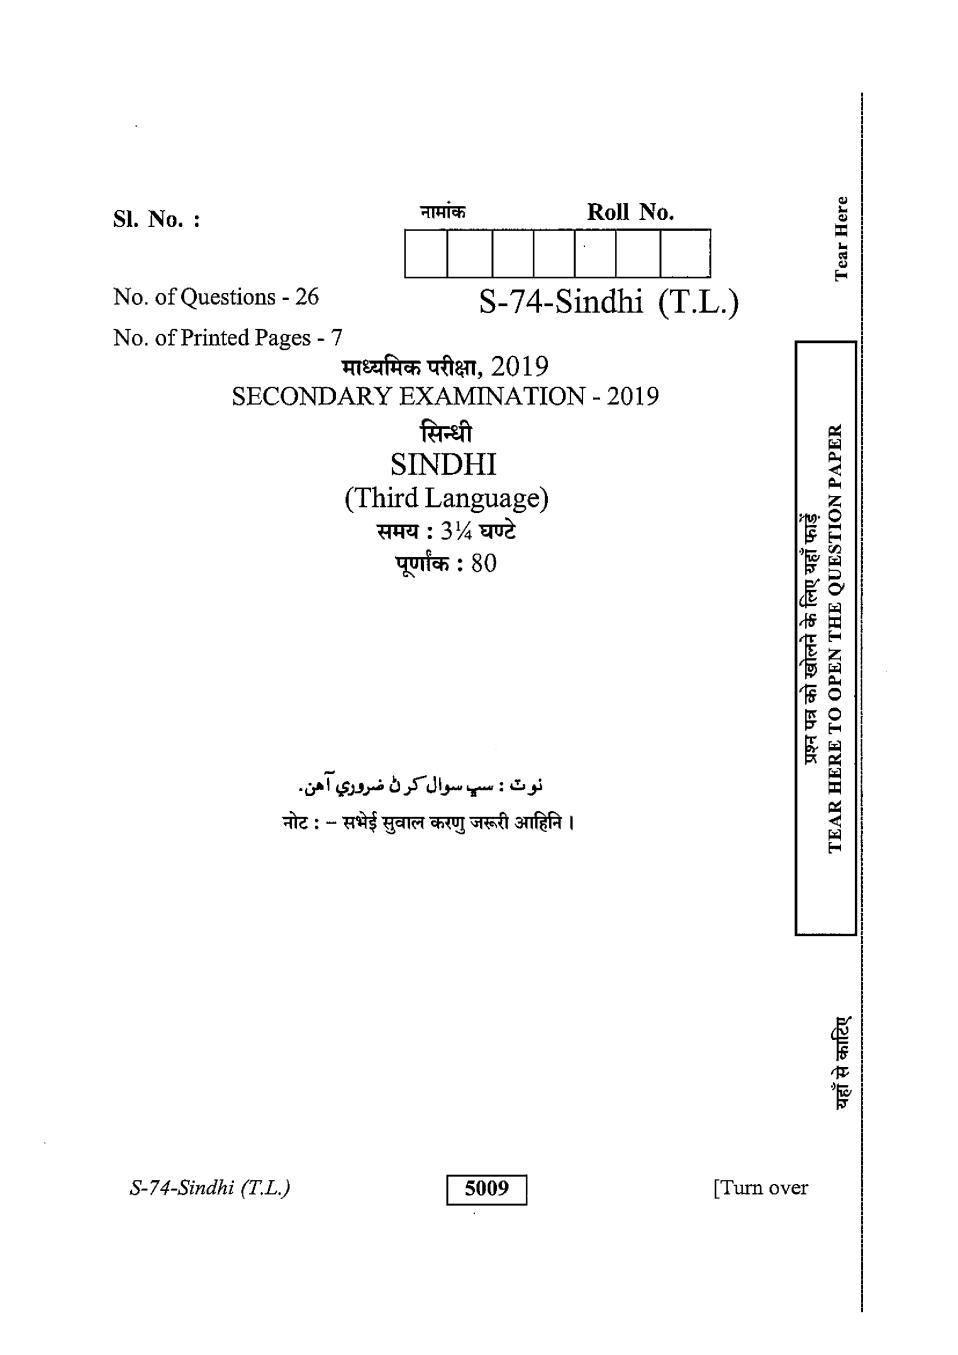 Rajasthan Board Secondary Sindhi (TL) Question Paper